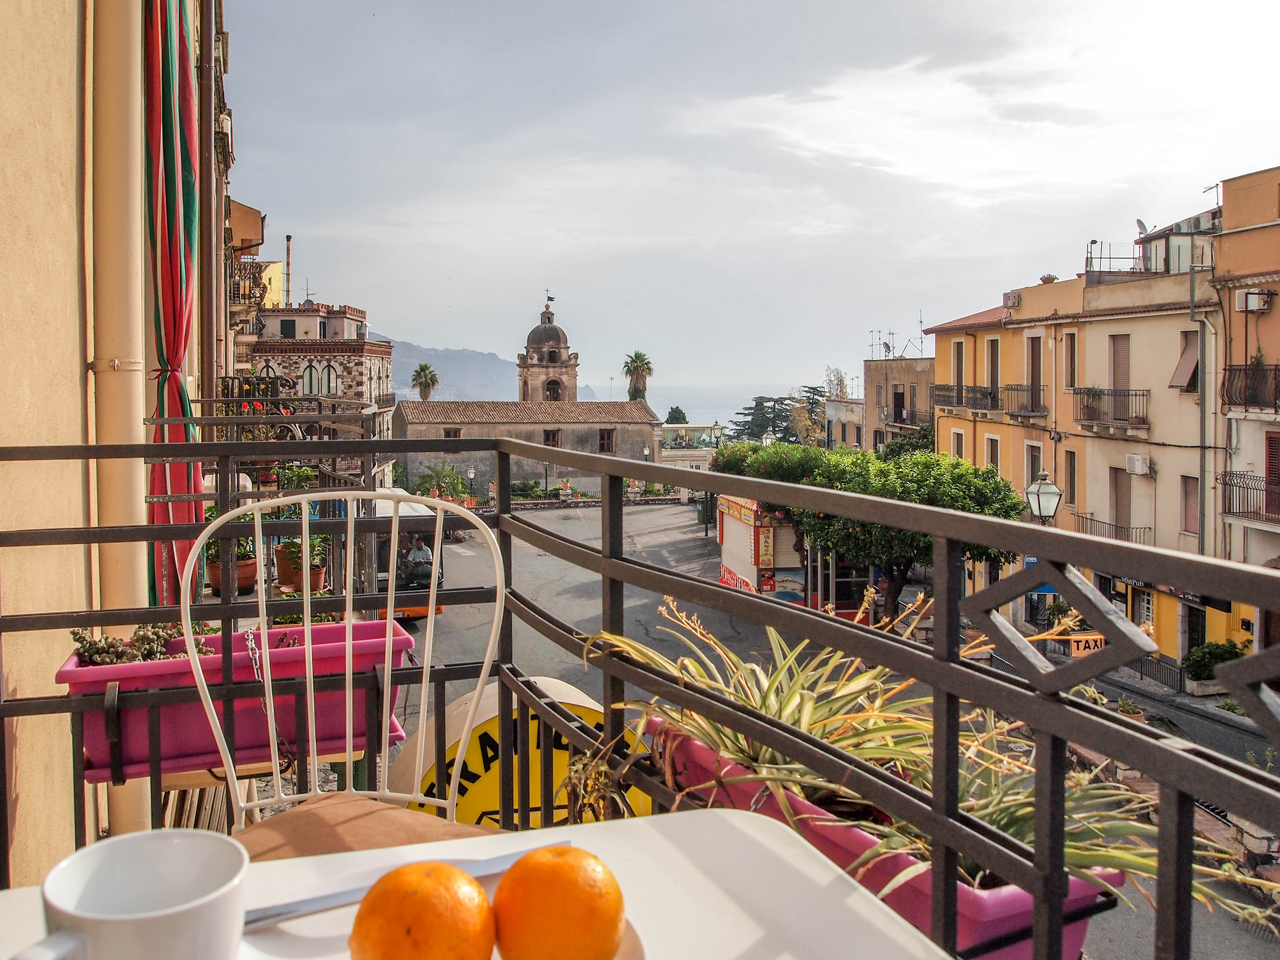 Our nice little balcony overlooking the main street and the sea! Breakfast on the table!